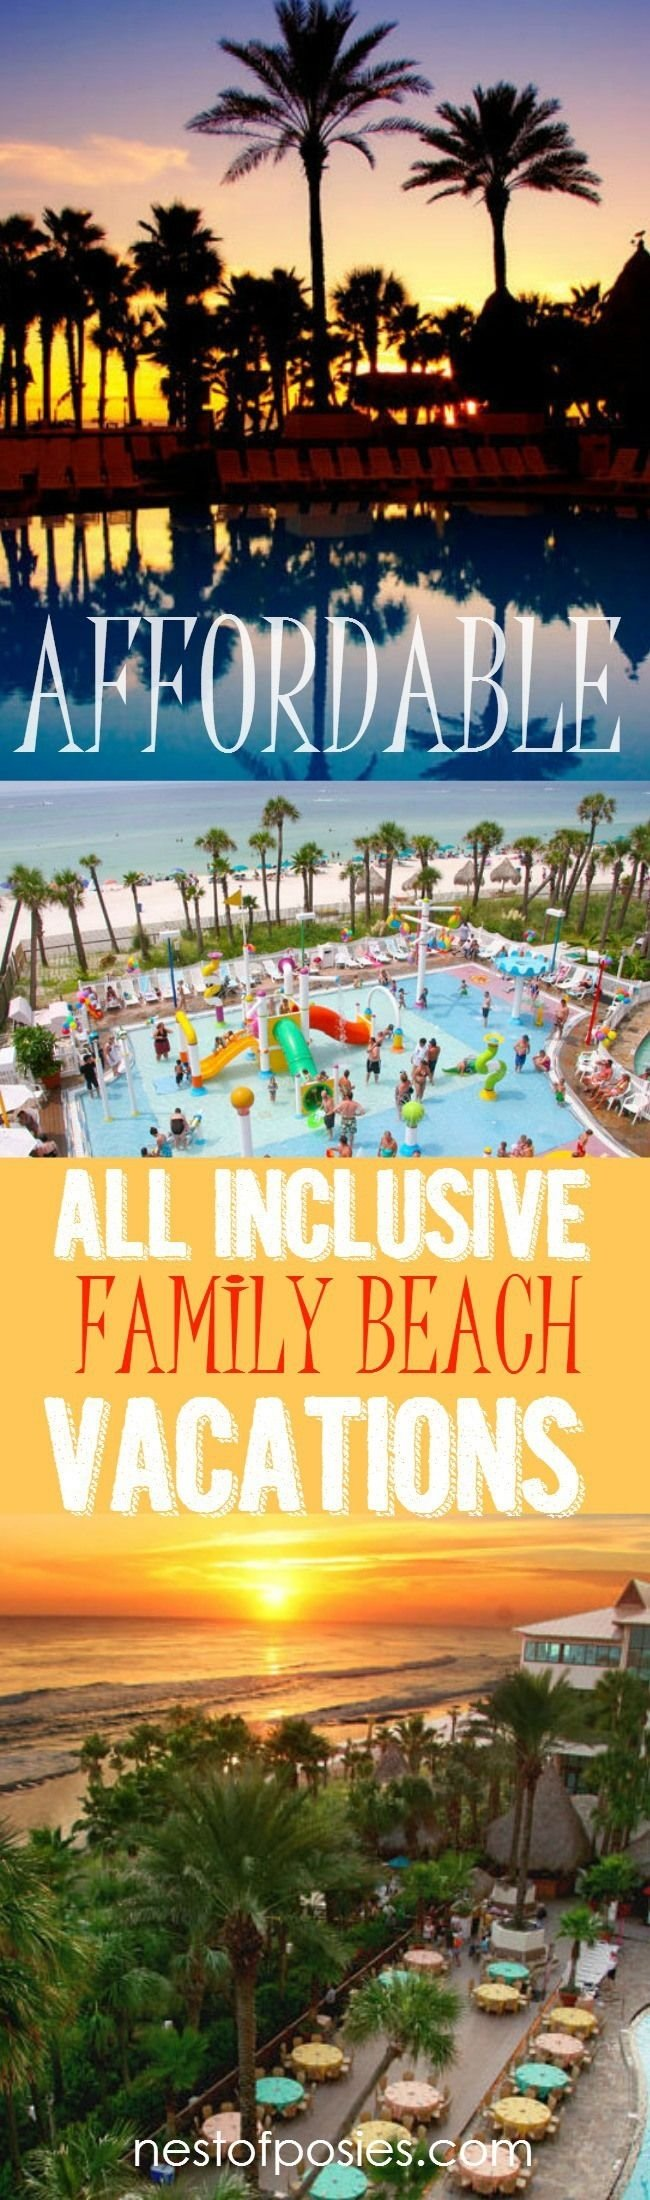 10 Fashionable Family Vacation Ideas In Florida 27 best panama city beach dreaming images on pinterest florida 2021